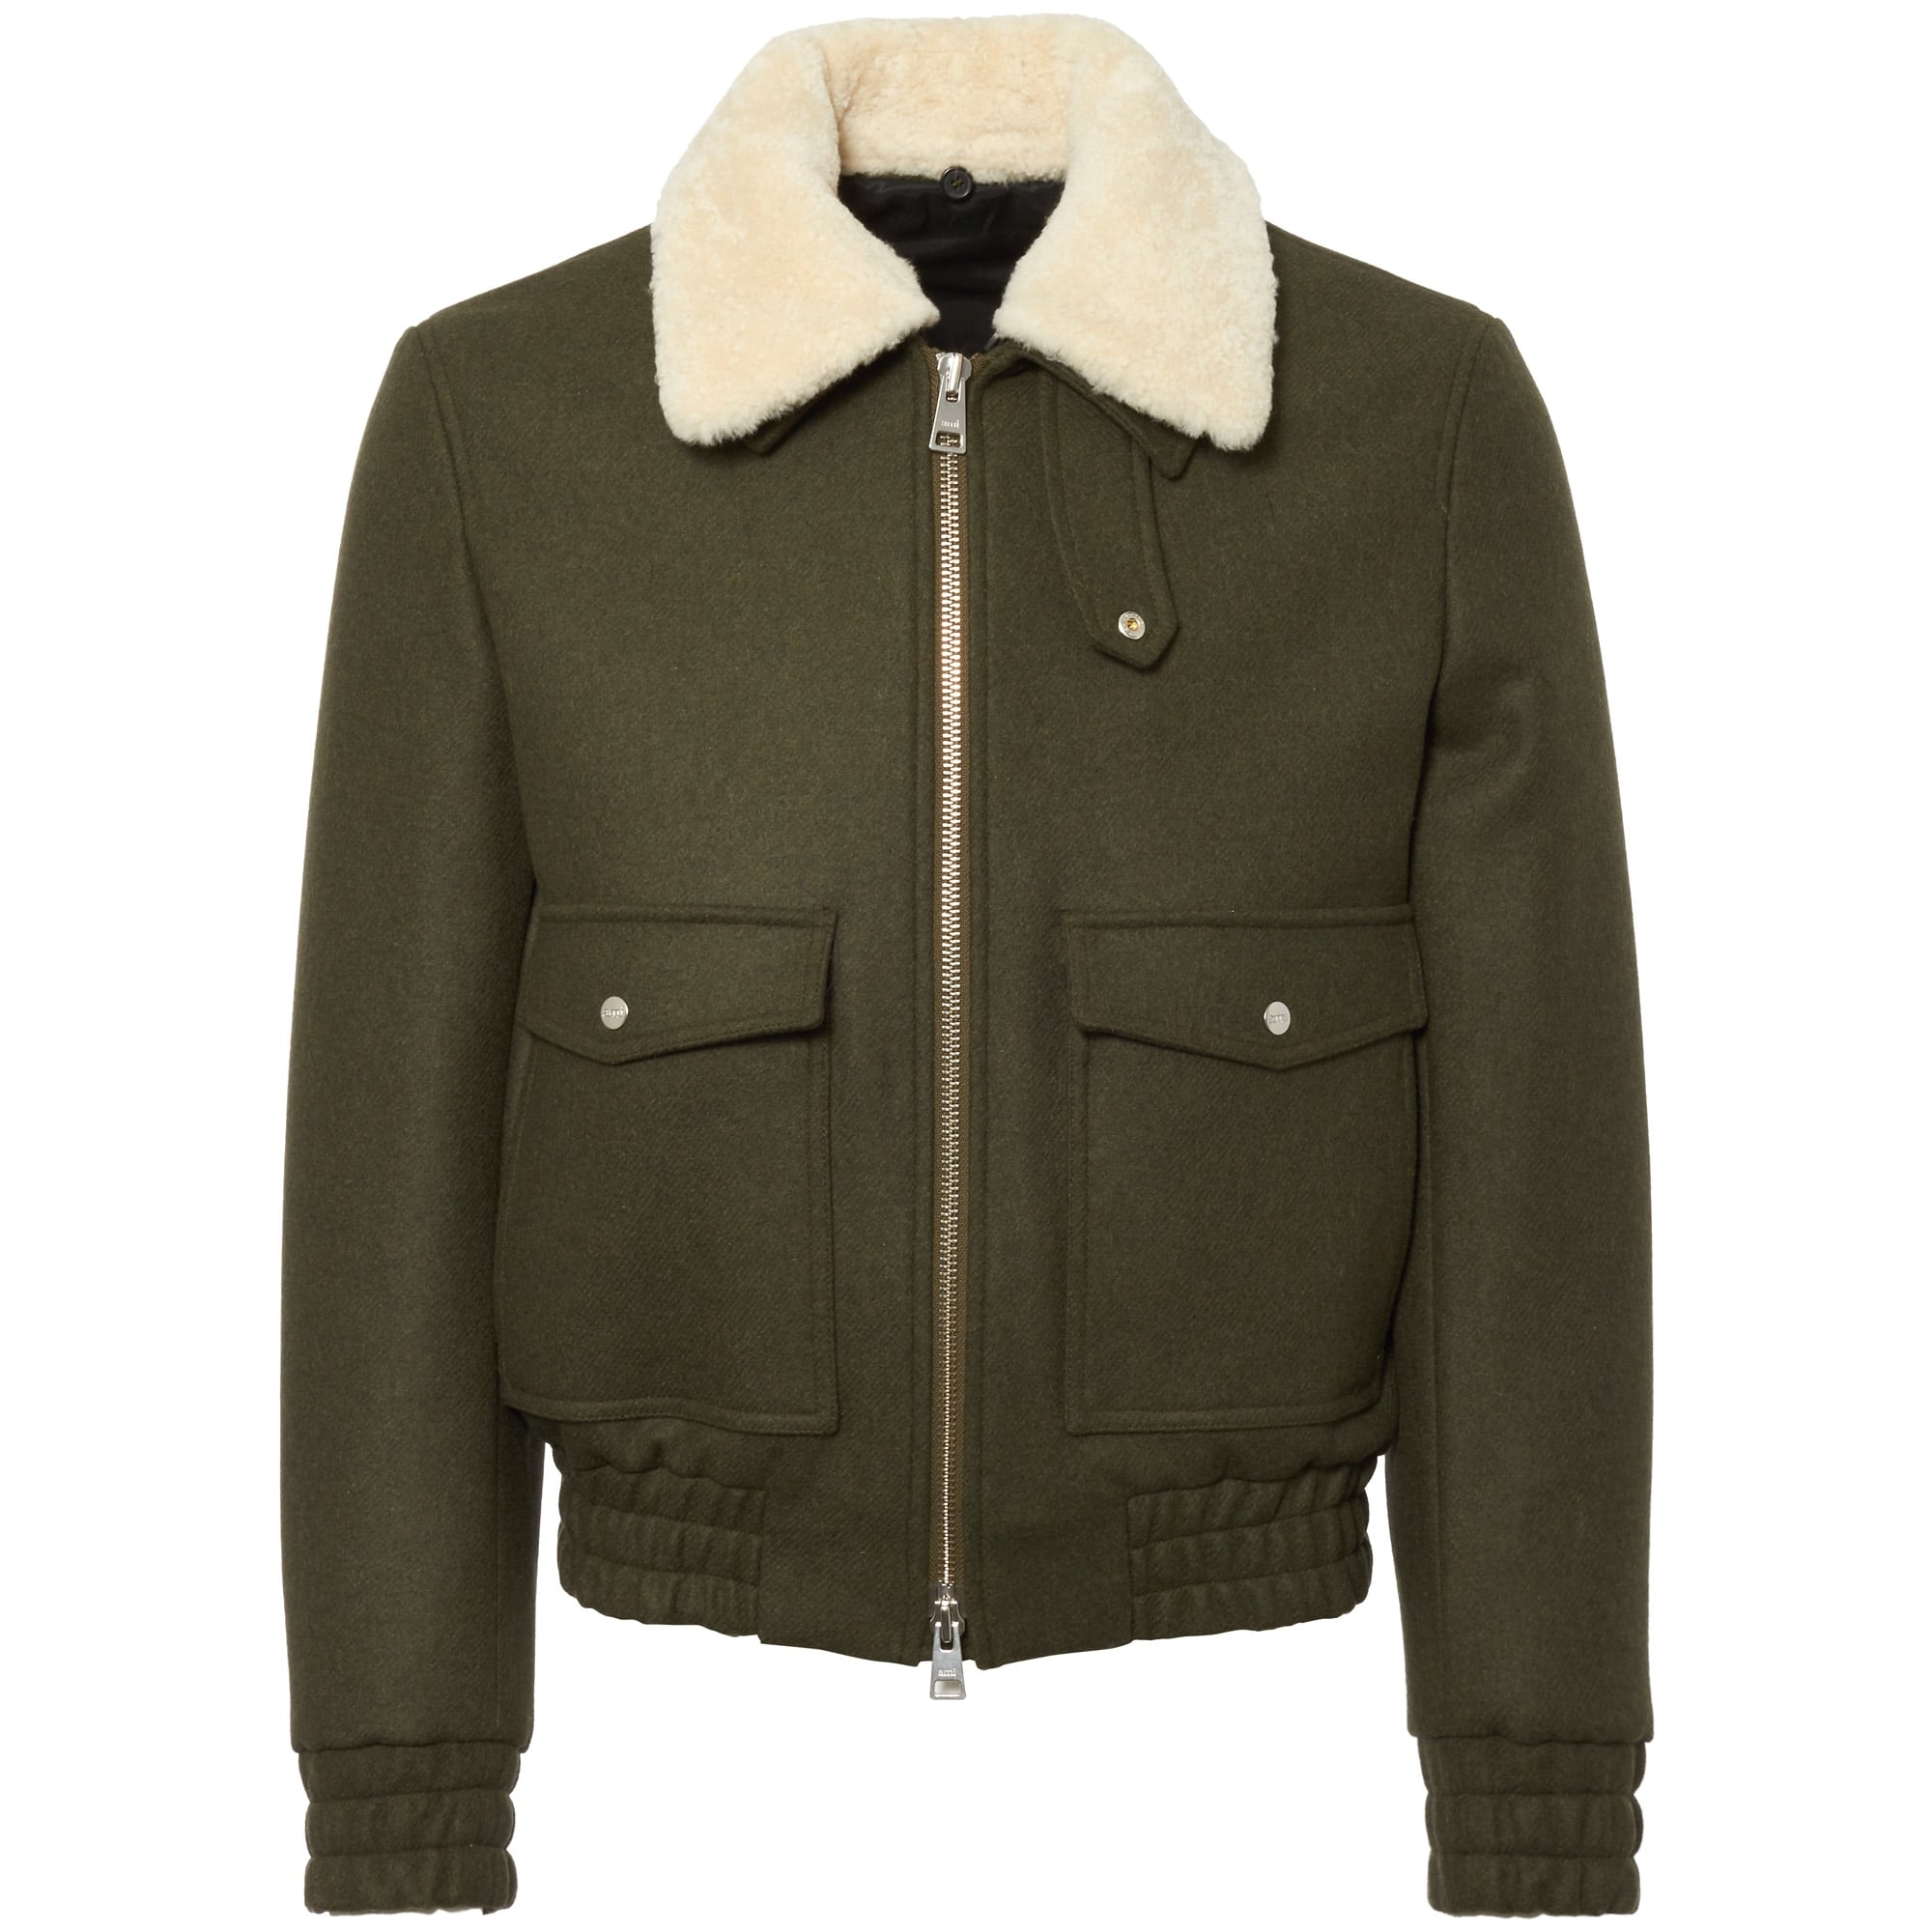 b32e4c5b6 AMI Khaki Zipped Jacket with Shearling Collar